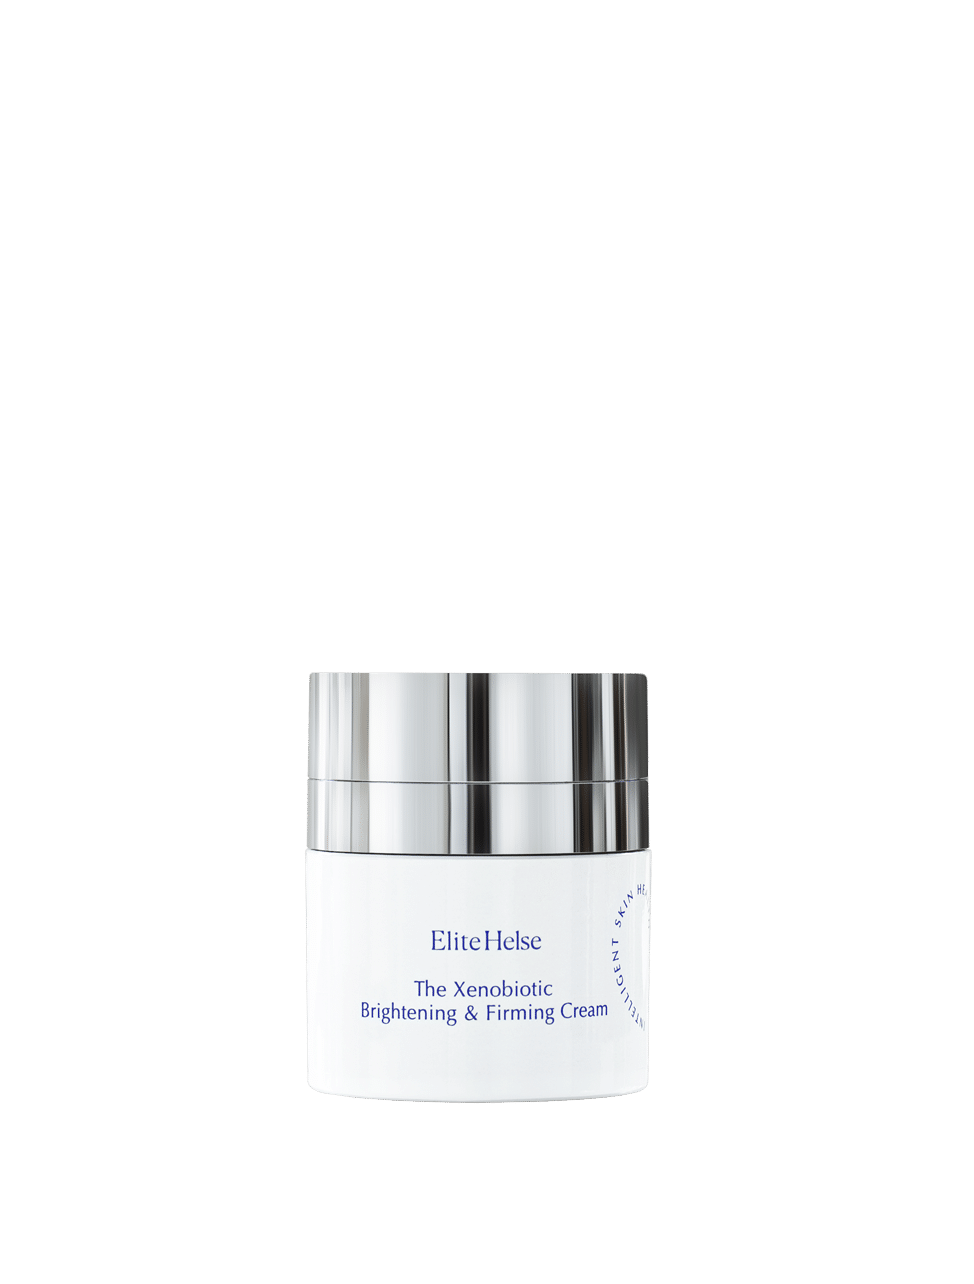 03_The-Xenobiotic-Brightening-&-Firming-Cream